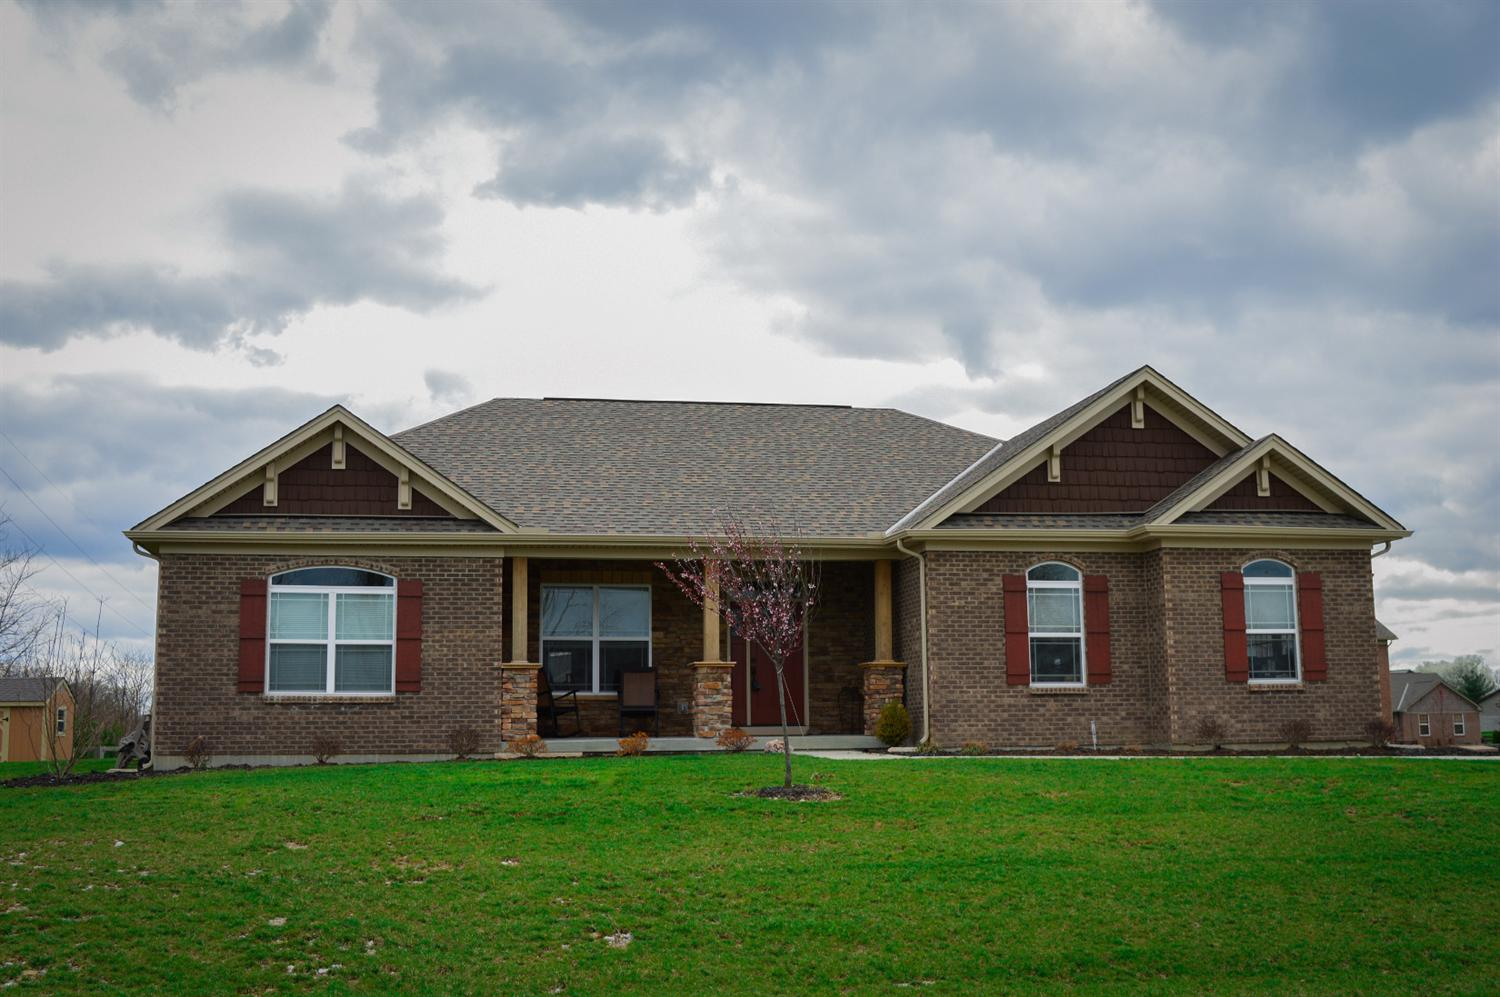 Photo 1 for 3277 Cornerstone Dr Burlington, KY 41005